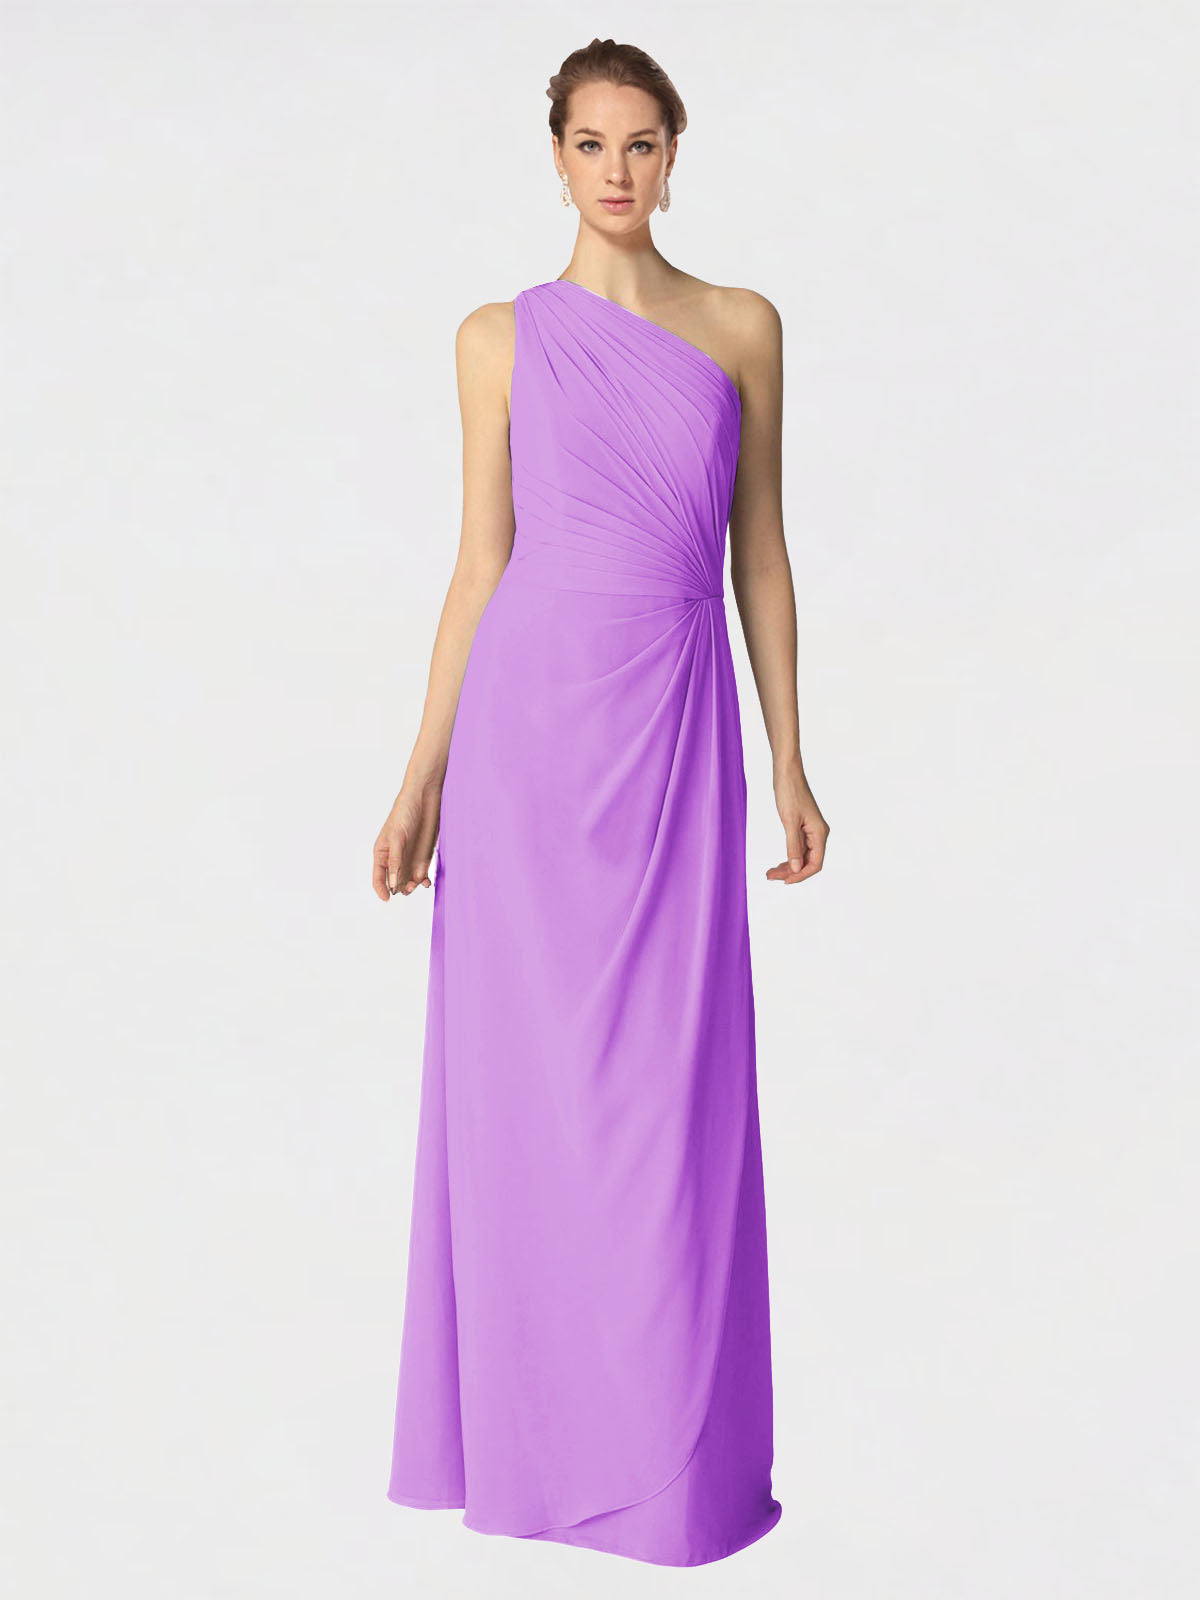 Long A-Line One Shoulder Sleeveless Violet Chiffon Bridesmaid Dress Aurora